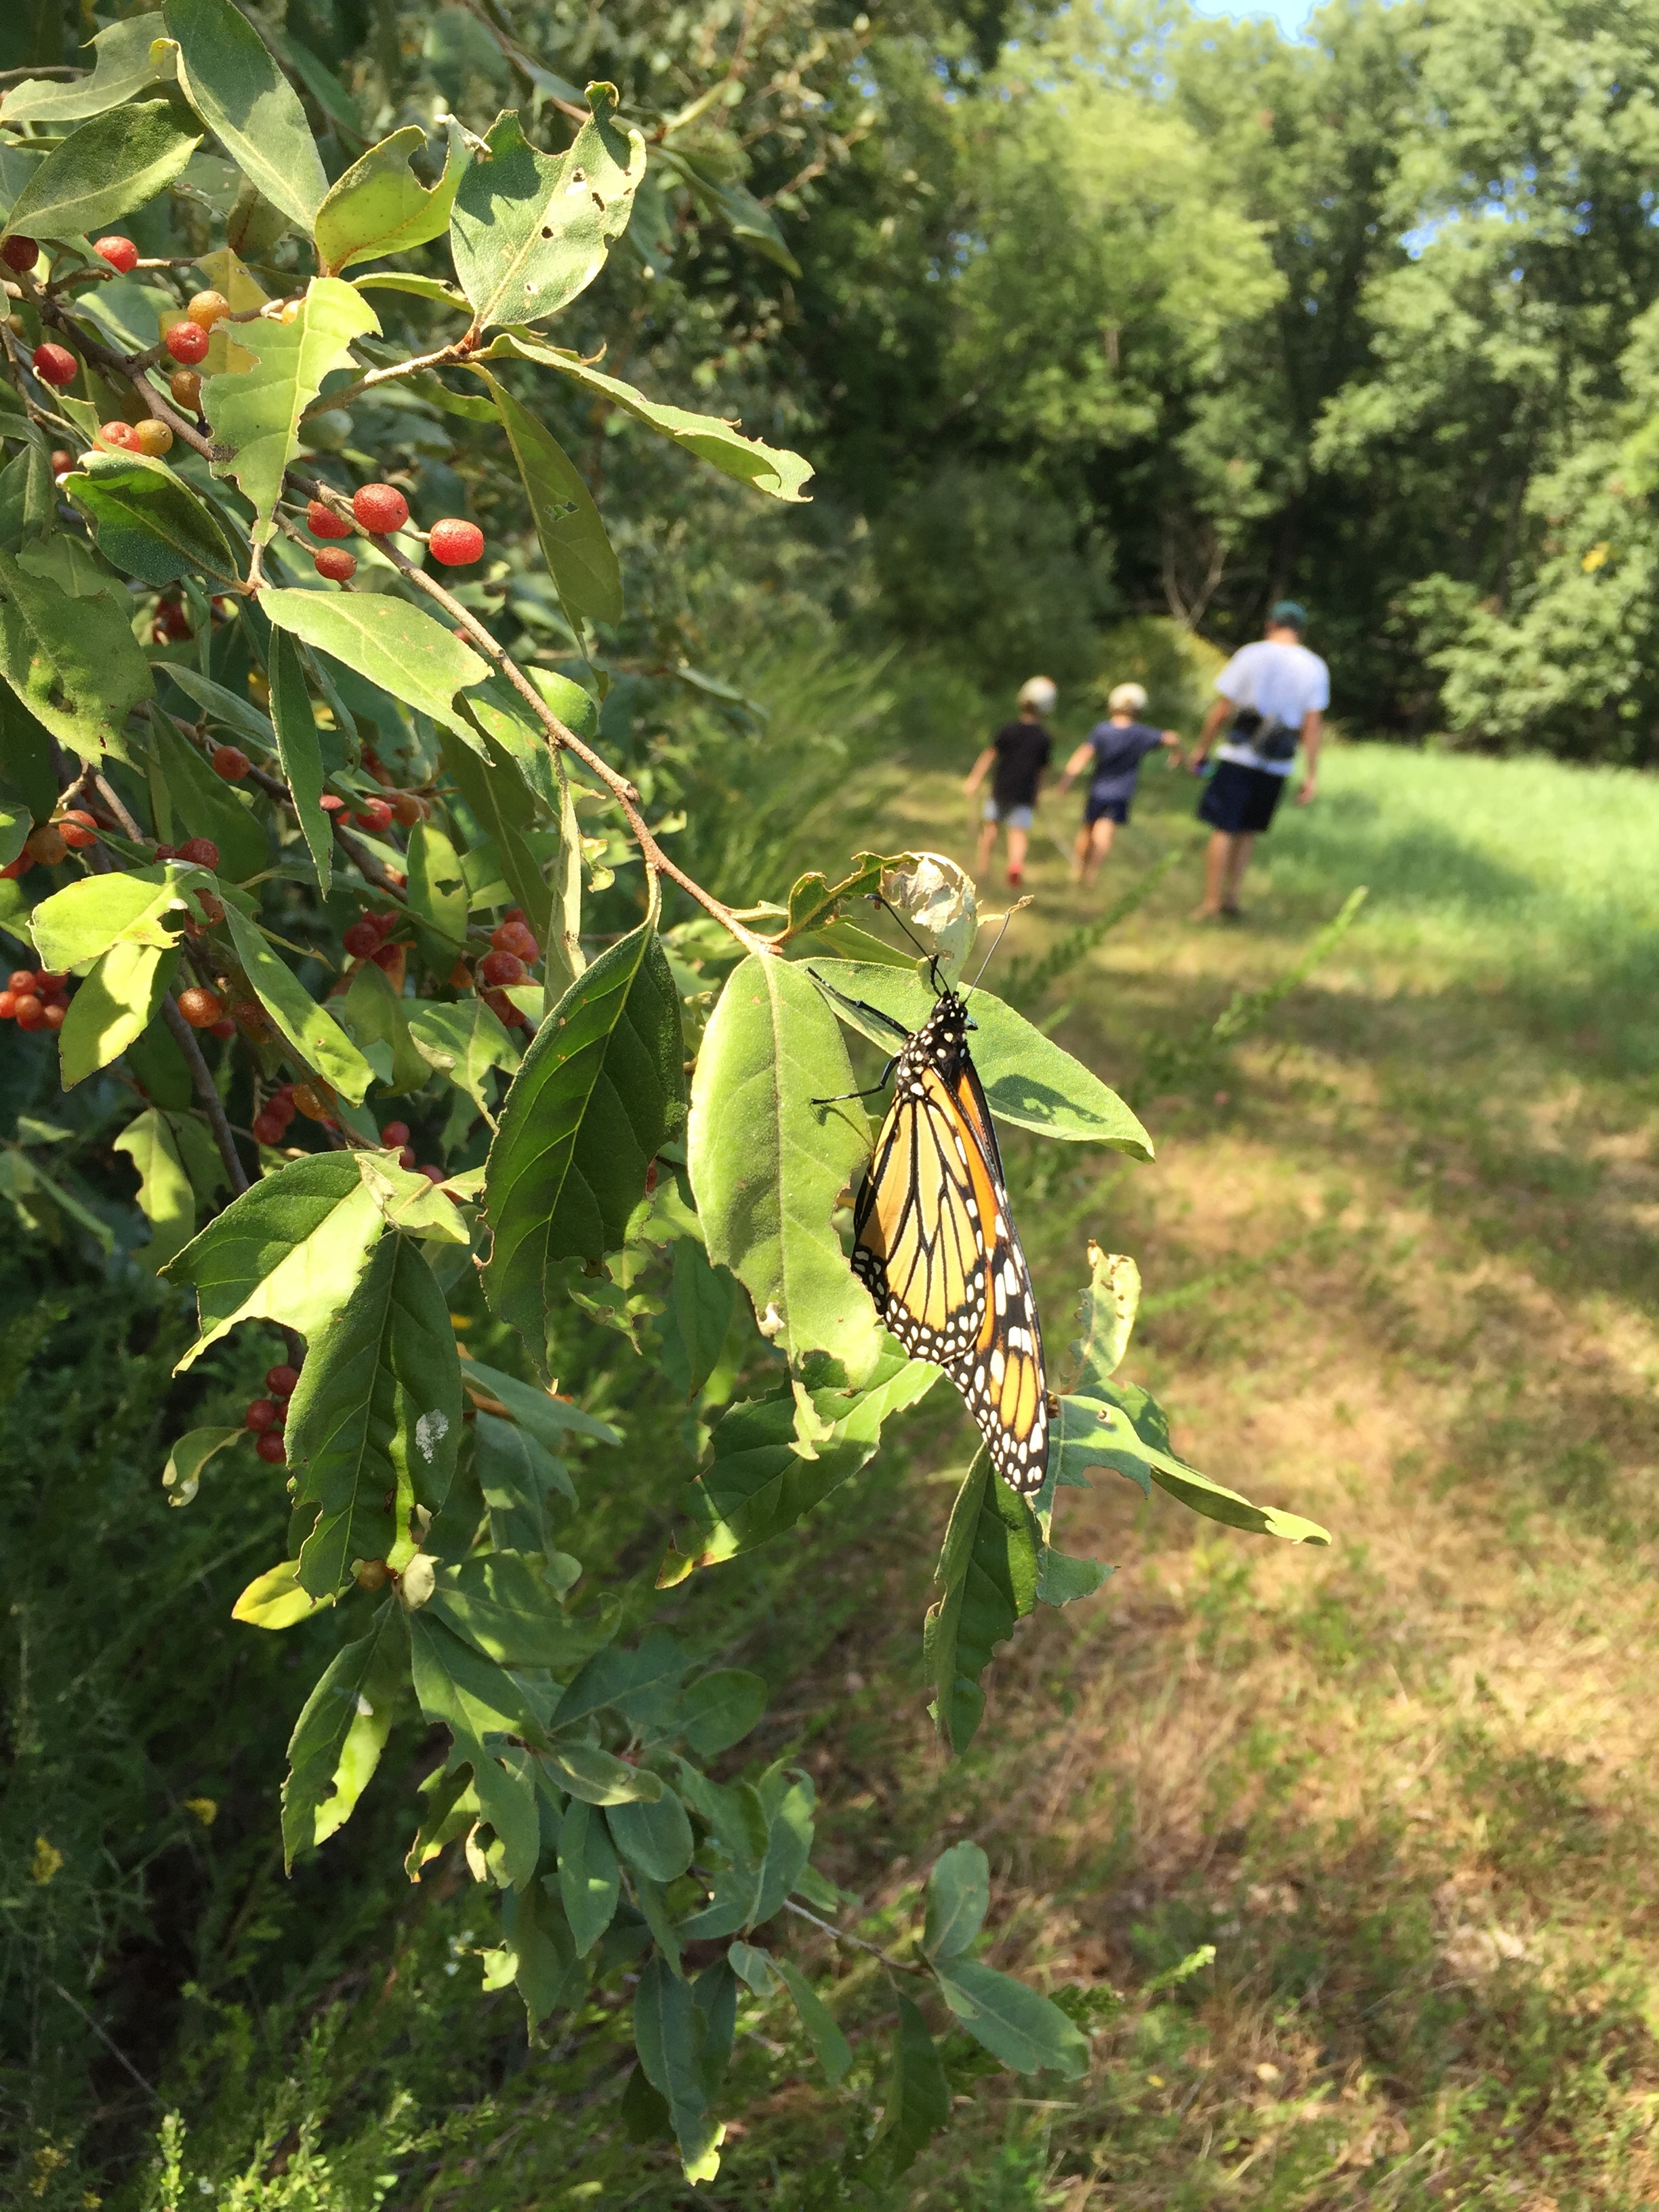 Remember that  caterpillar we found on our fennel  earlier this summer? Seems fitting that we'd encounter another butterfly on our walk this past weekend.